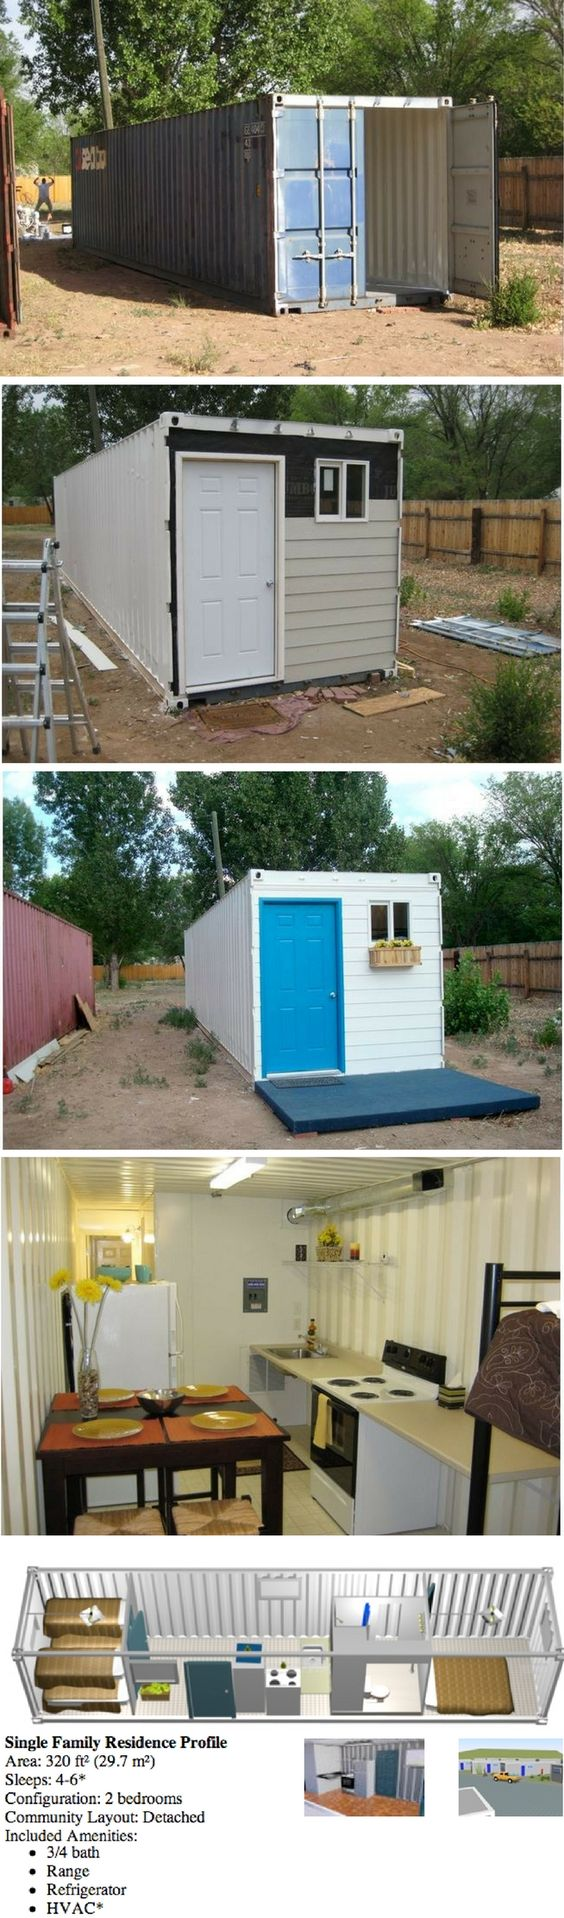 Smart Modular Shipping Container Homes Feel Bright \u0026 Spacious ...